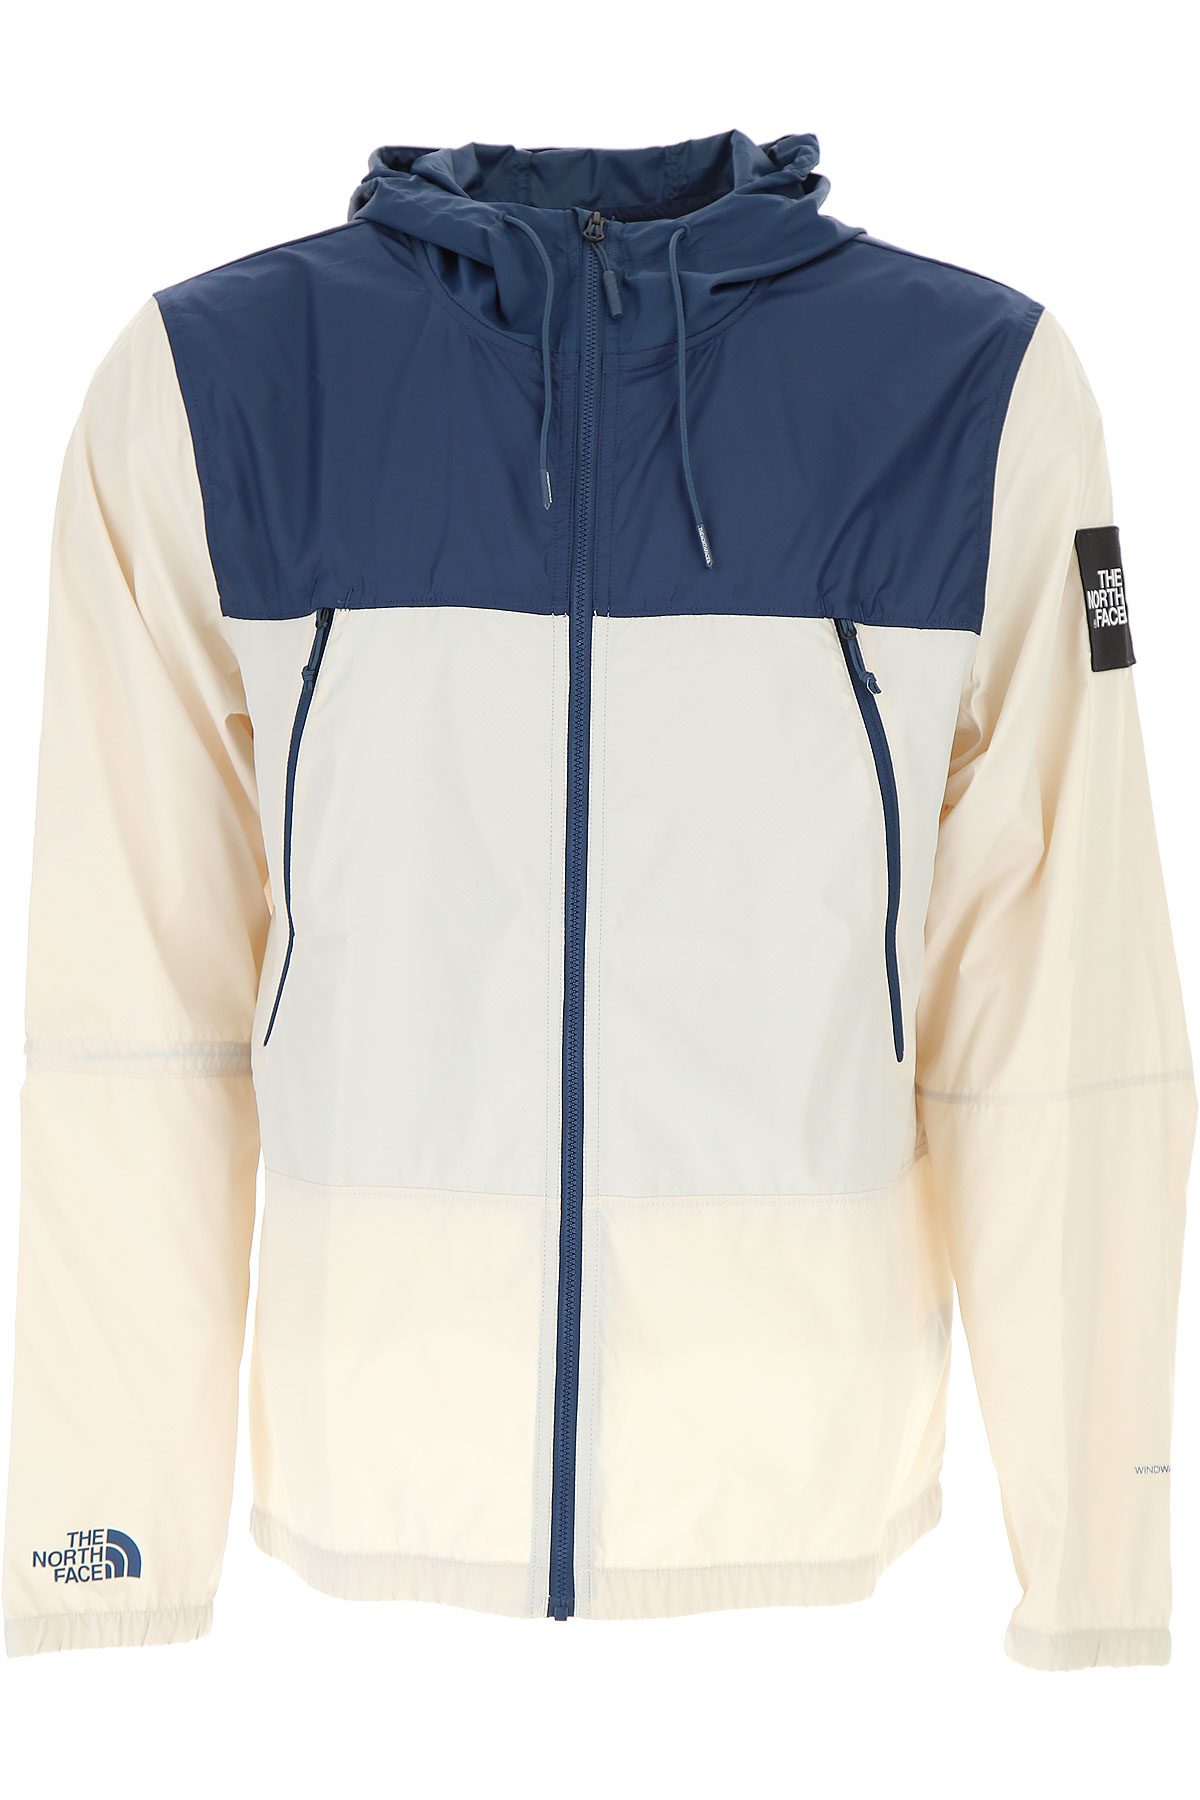 Image of The North Face Mens Clothing On Sale, Baltic Blue, polyester, 2017, L M S